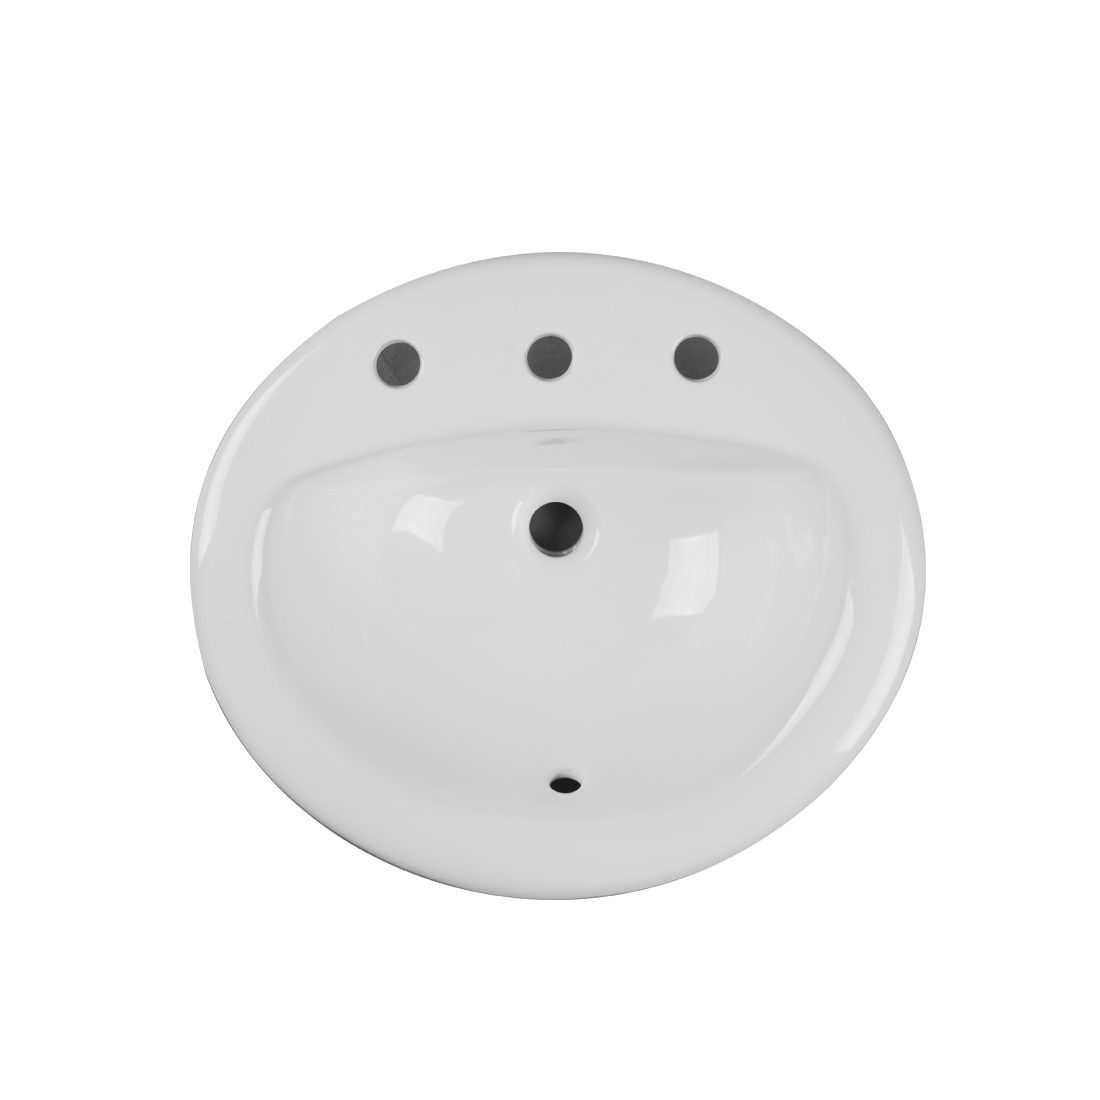 New York Lavatory 3Hole 8inch White Up View